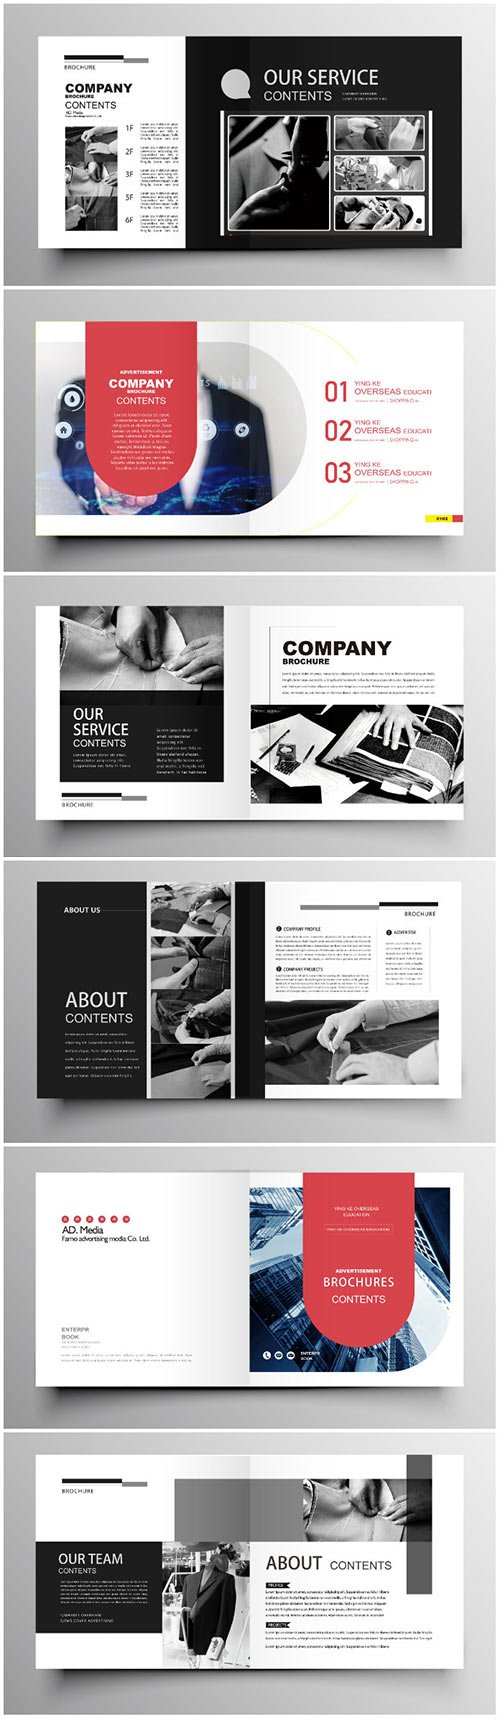 Brochure template vector layout design, corporate business annual report, magazine, flyer mockup # 203